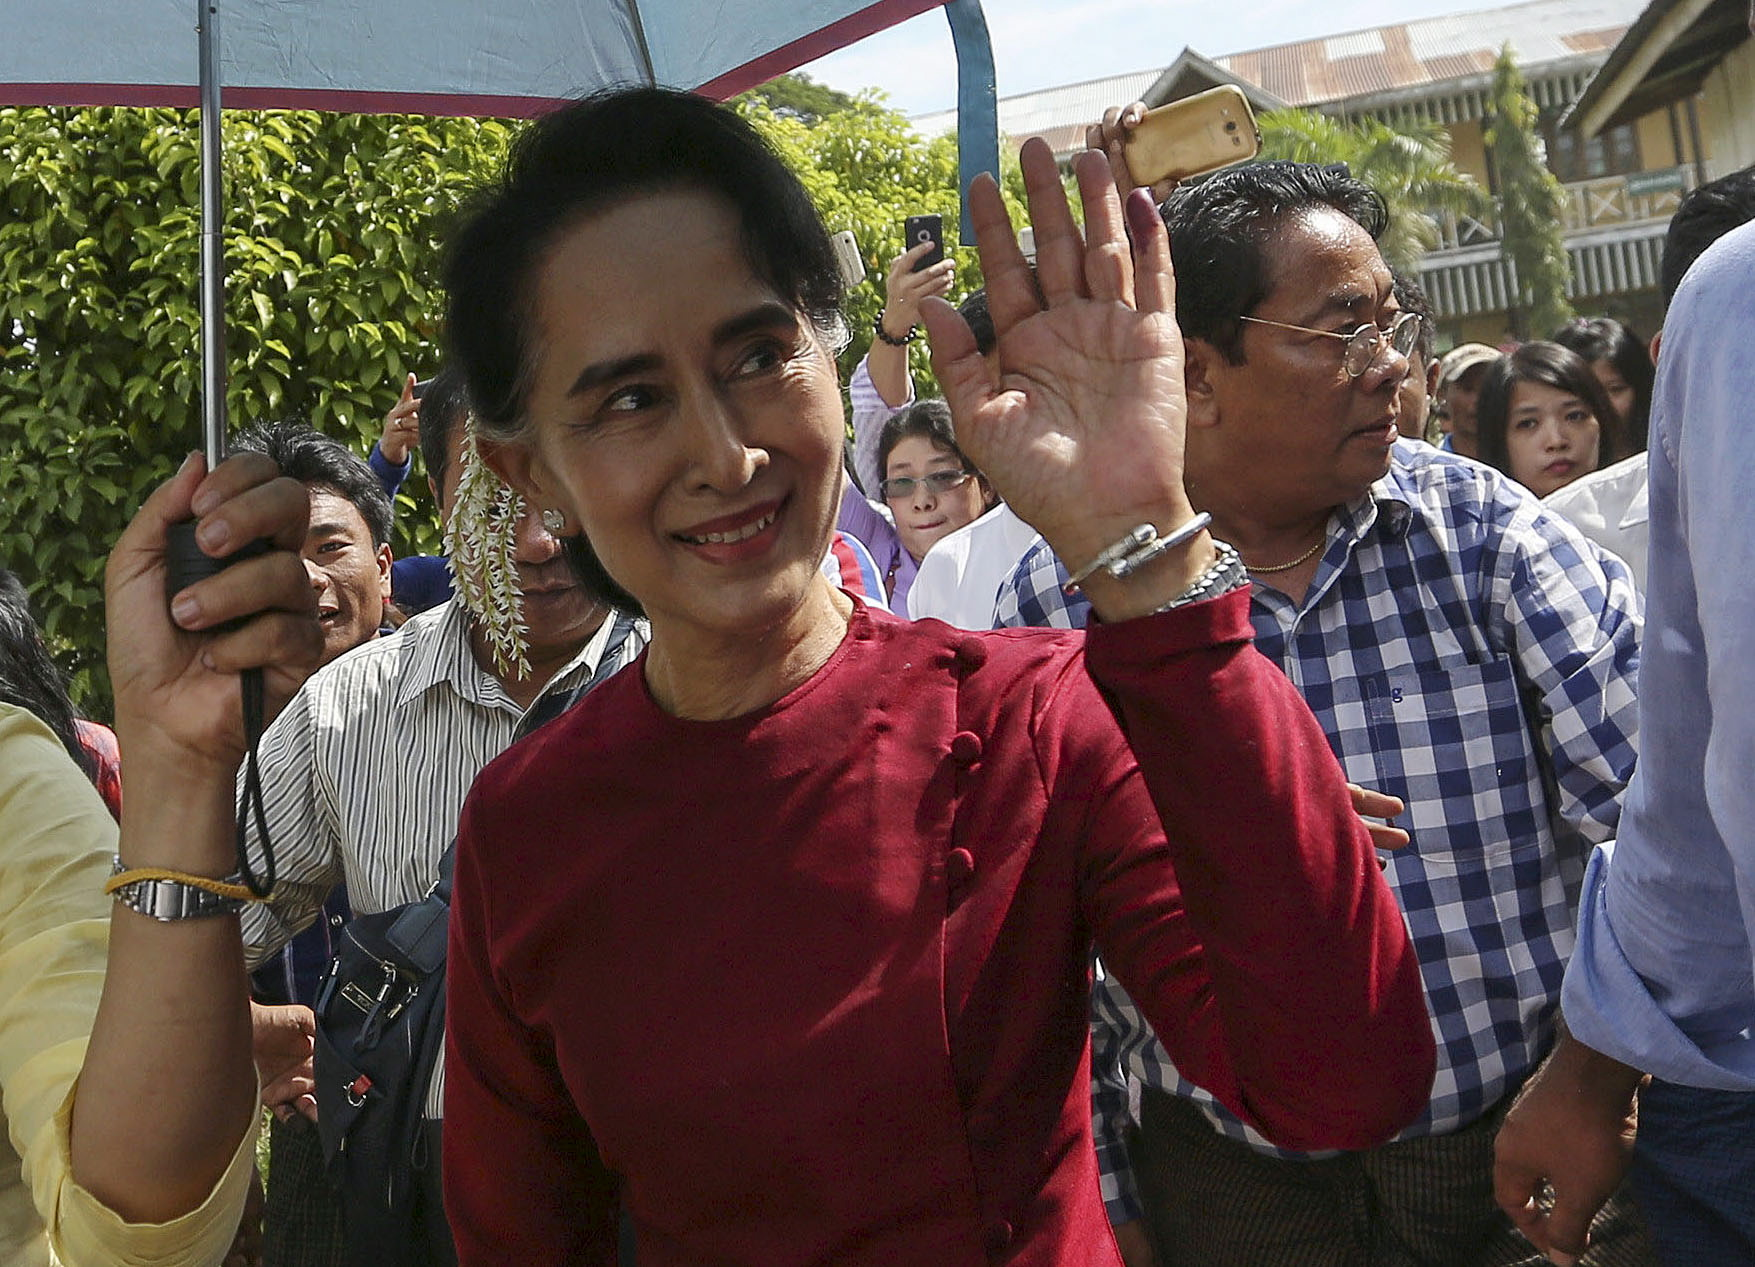 Burmese pro-democracy leader Aung San Suu Kyi waves at supporters as she visits polling stations at her constituency of Kawhmu township on Nov. 8, 2015